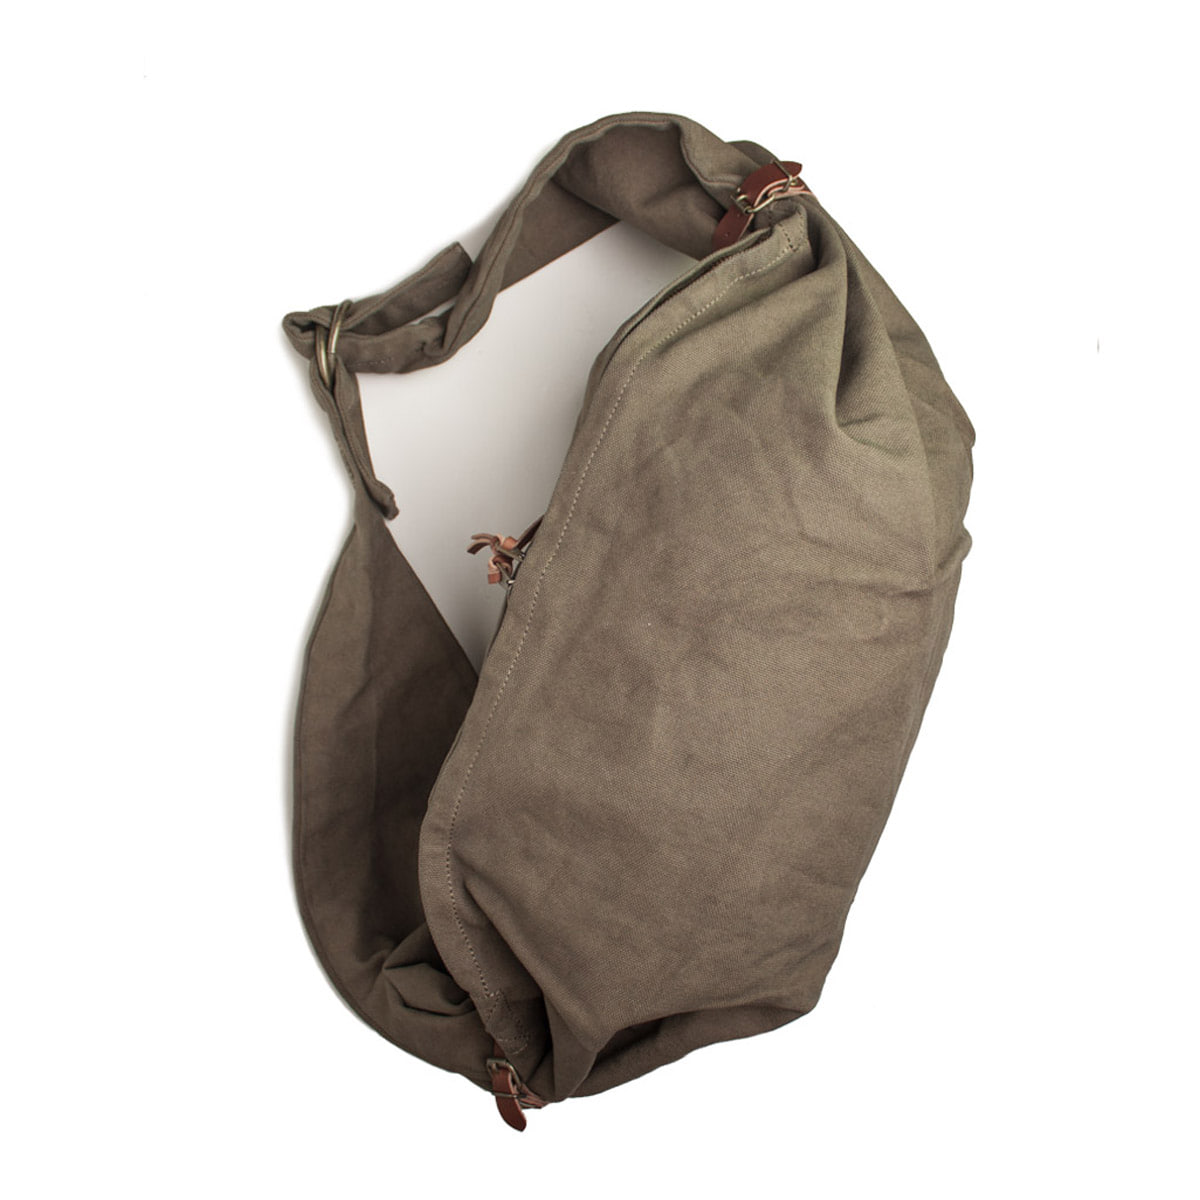 [KAPITAL] SAIL CLOTH LITTLE SNUFKIN BAG 'KHAKI'